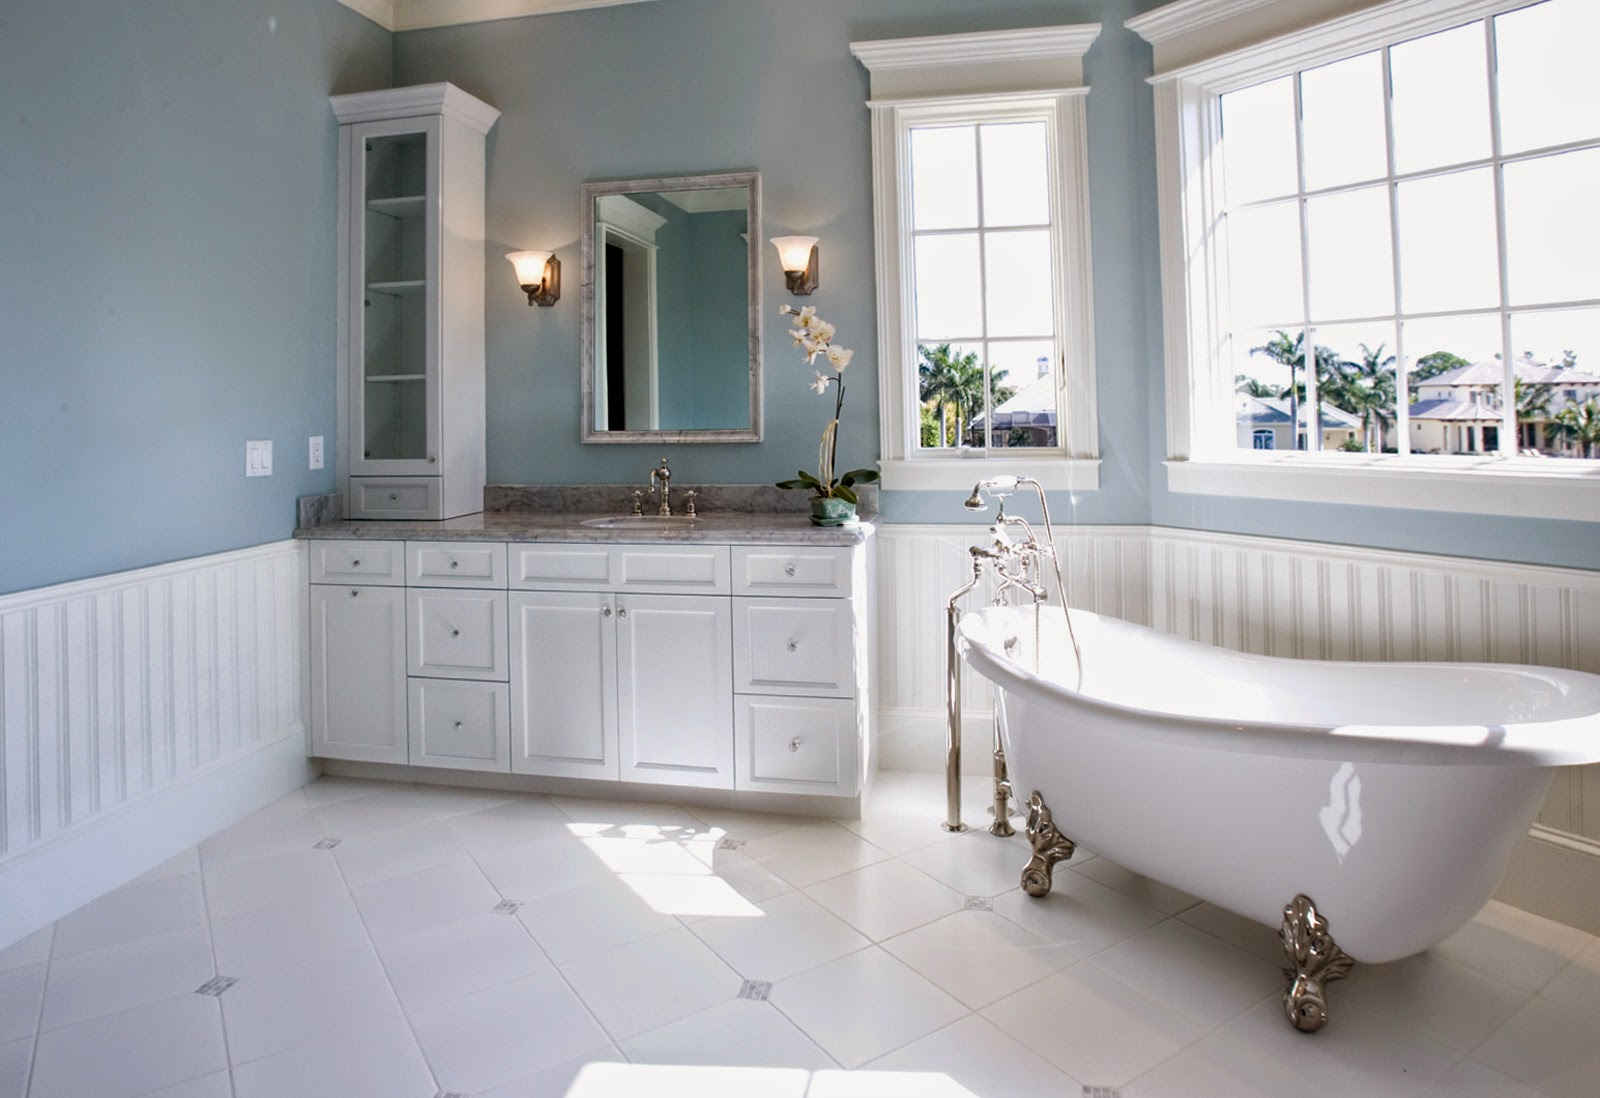 Top 10 beautiful bathroom design 2014 home interior blog for Bathroom design tips